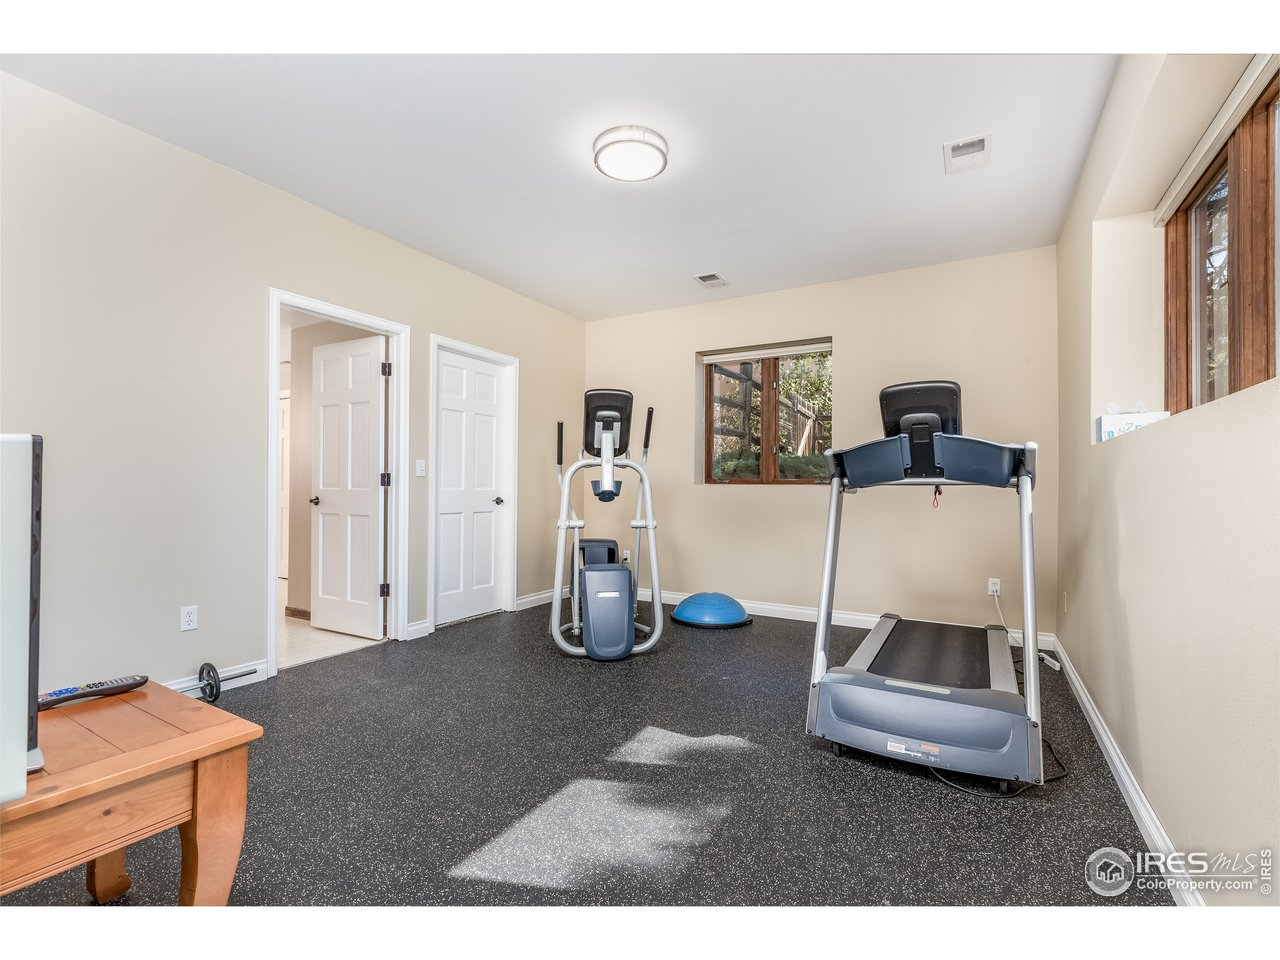 7th Bedroom used as Exercise Room